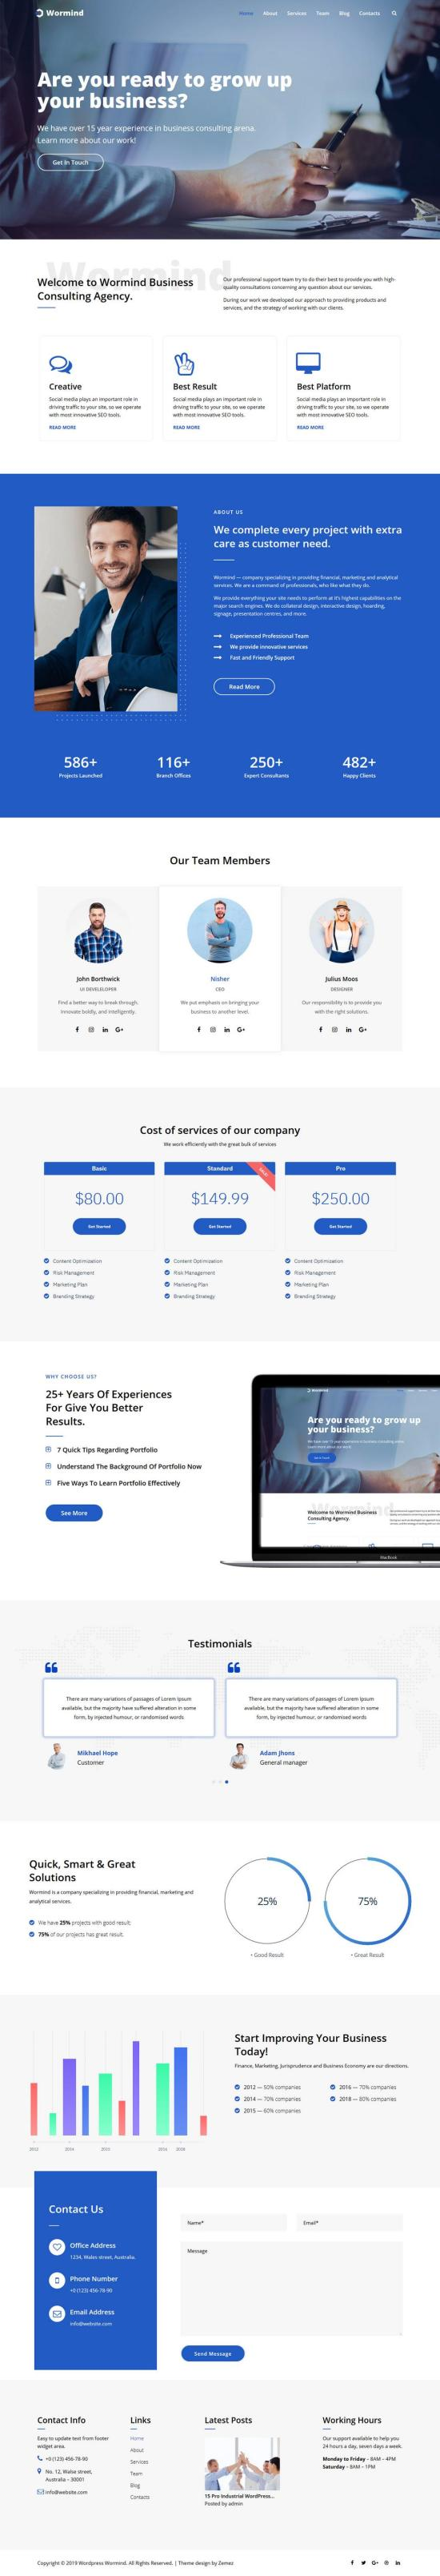 wormind wordpress theme 01 - Worming WordPress Theme